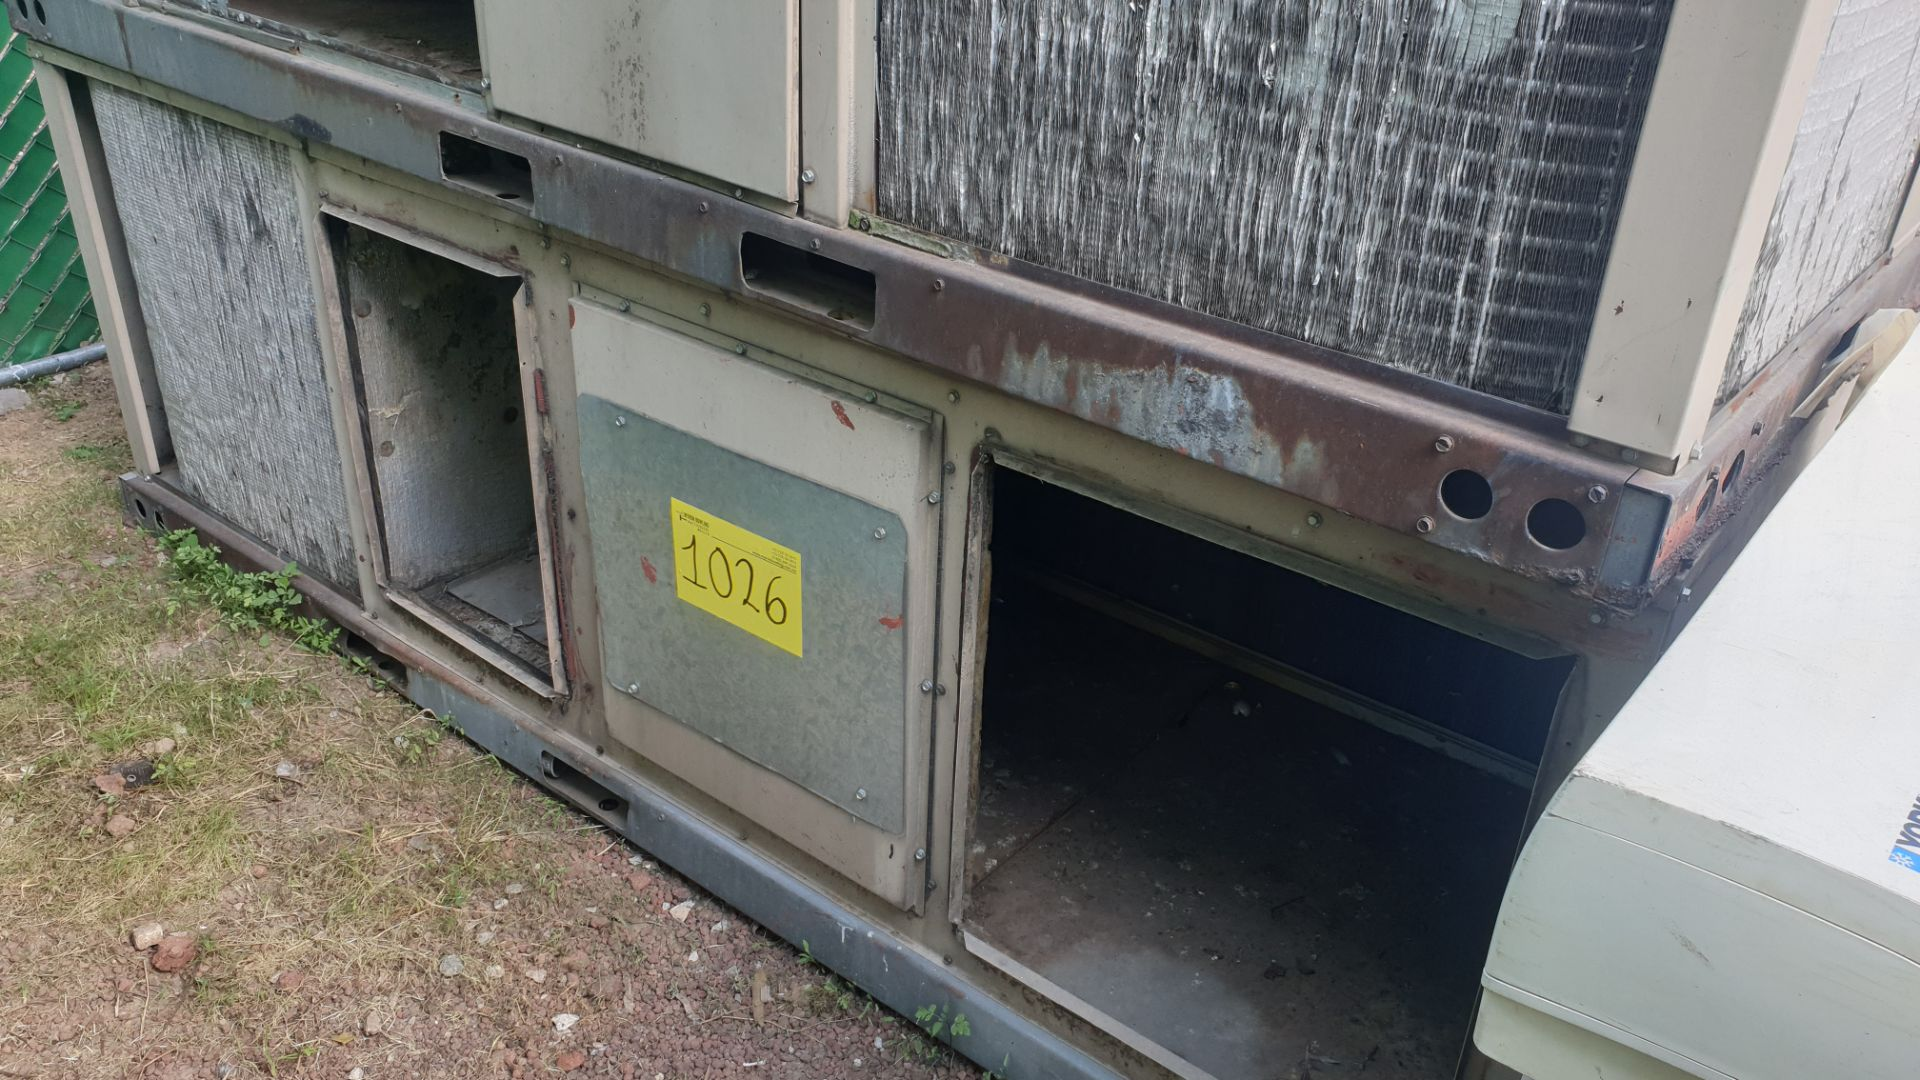 1 York Industrial Condensing unit, model D3CE090A46C n/s NFFM8698 - Image 4 of 6